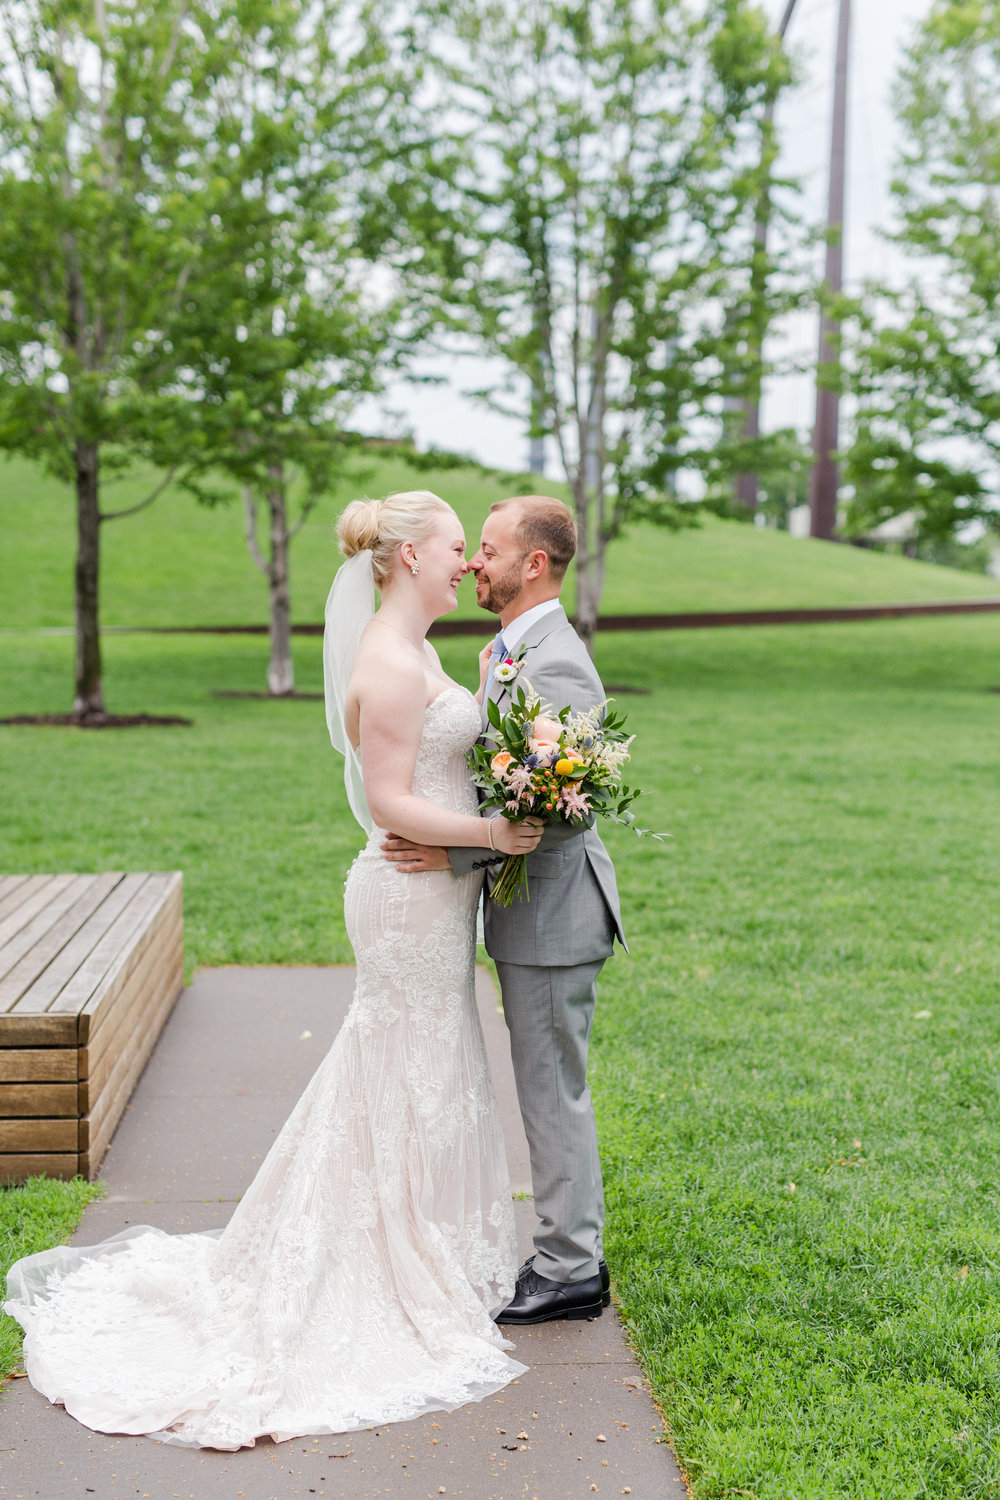 Jill + John :: Kristen Dyer :: Sixpence Events, nose touch bride and groom